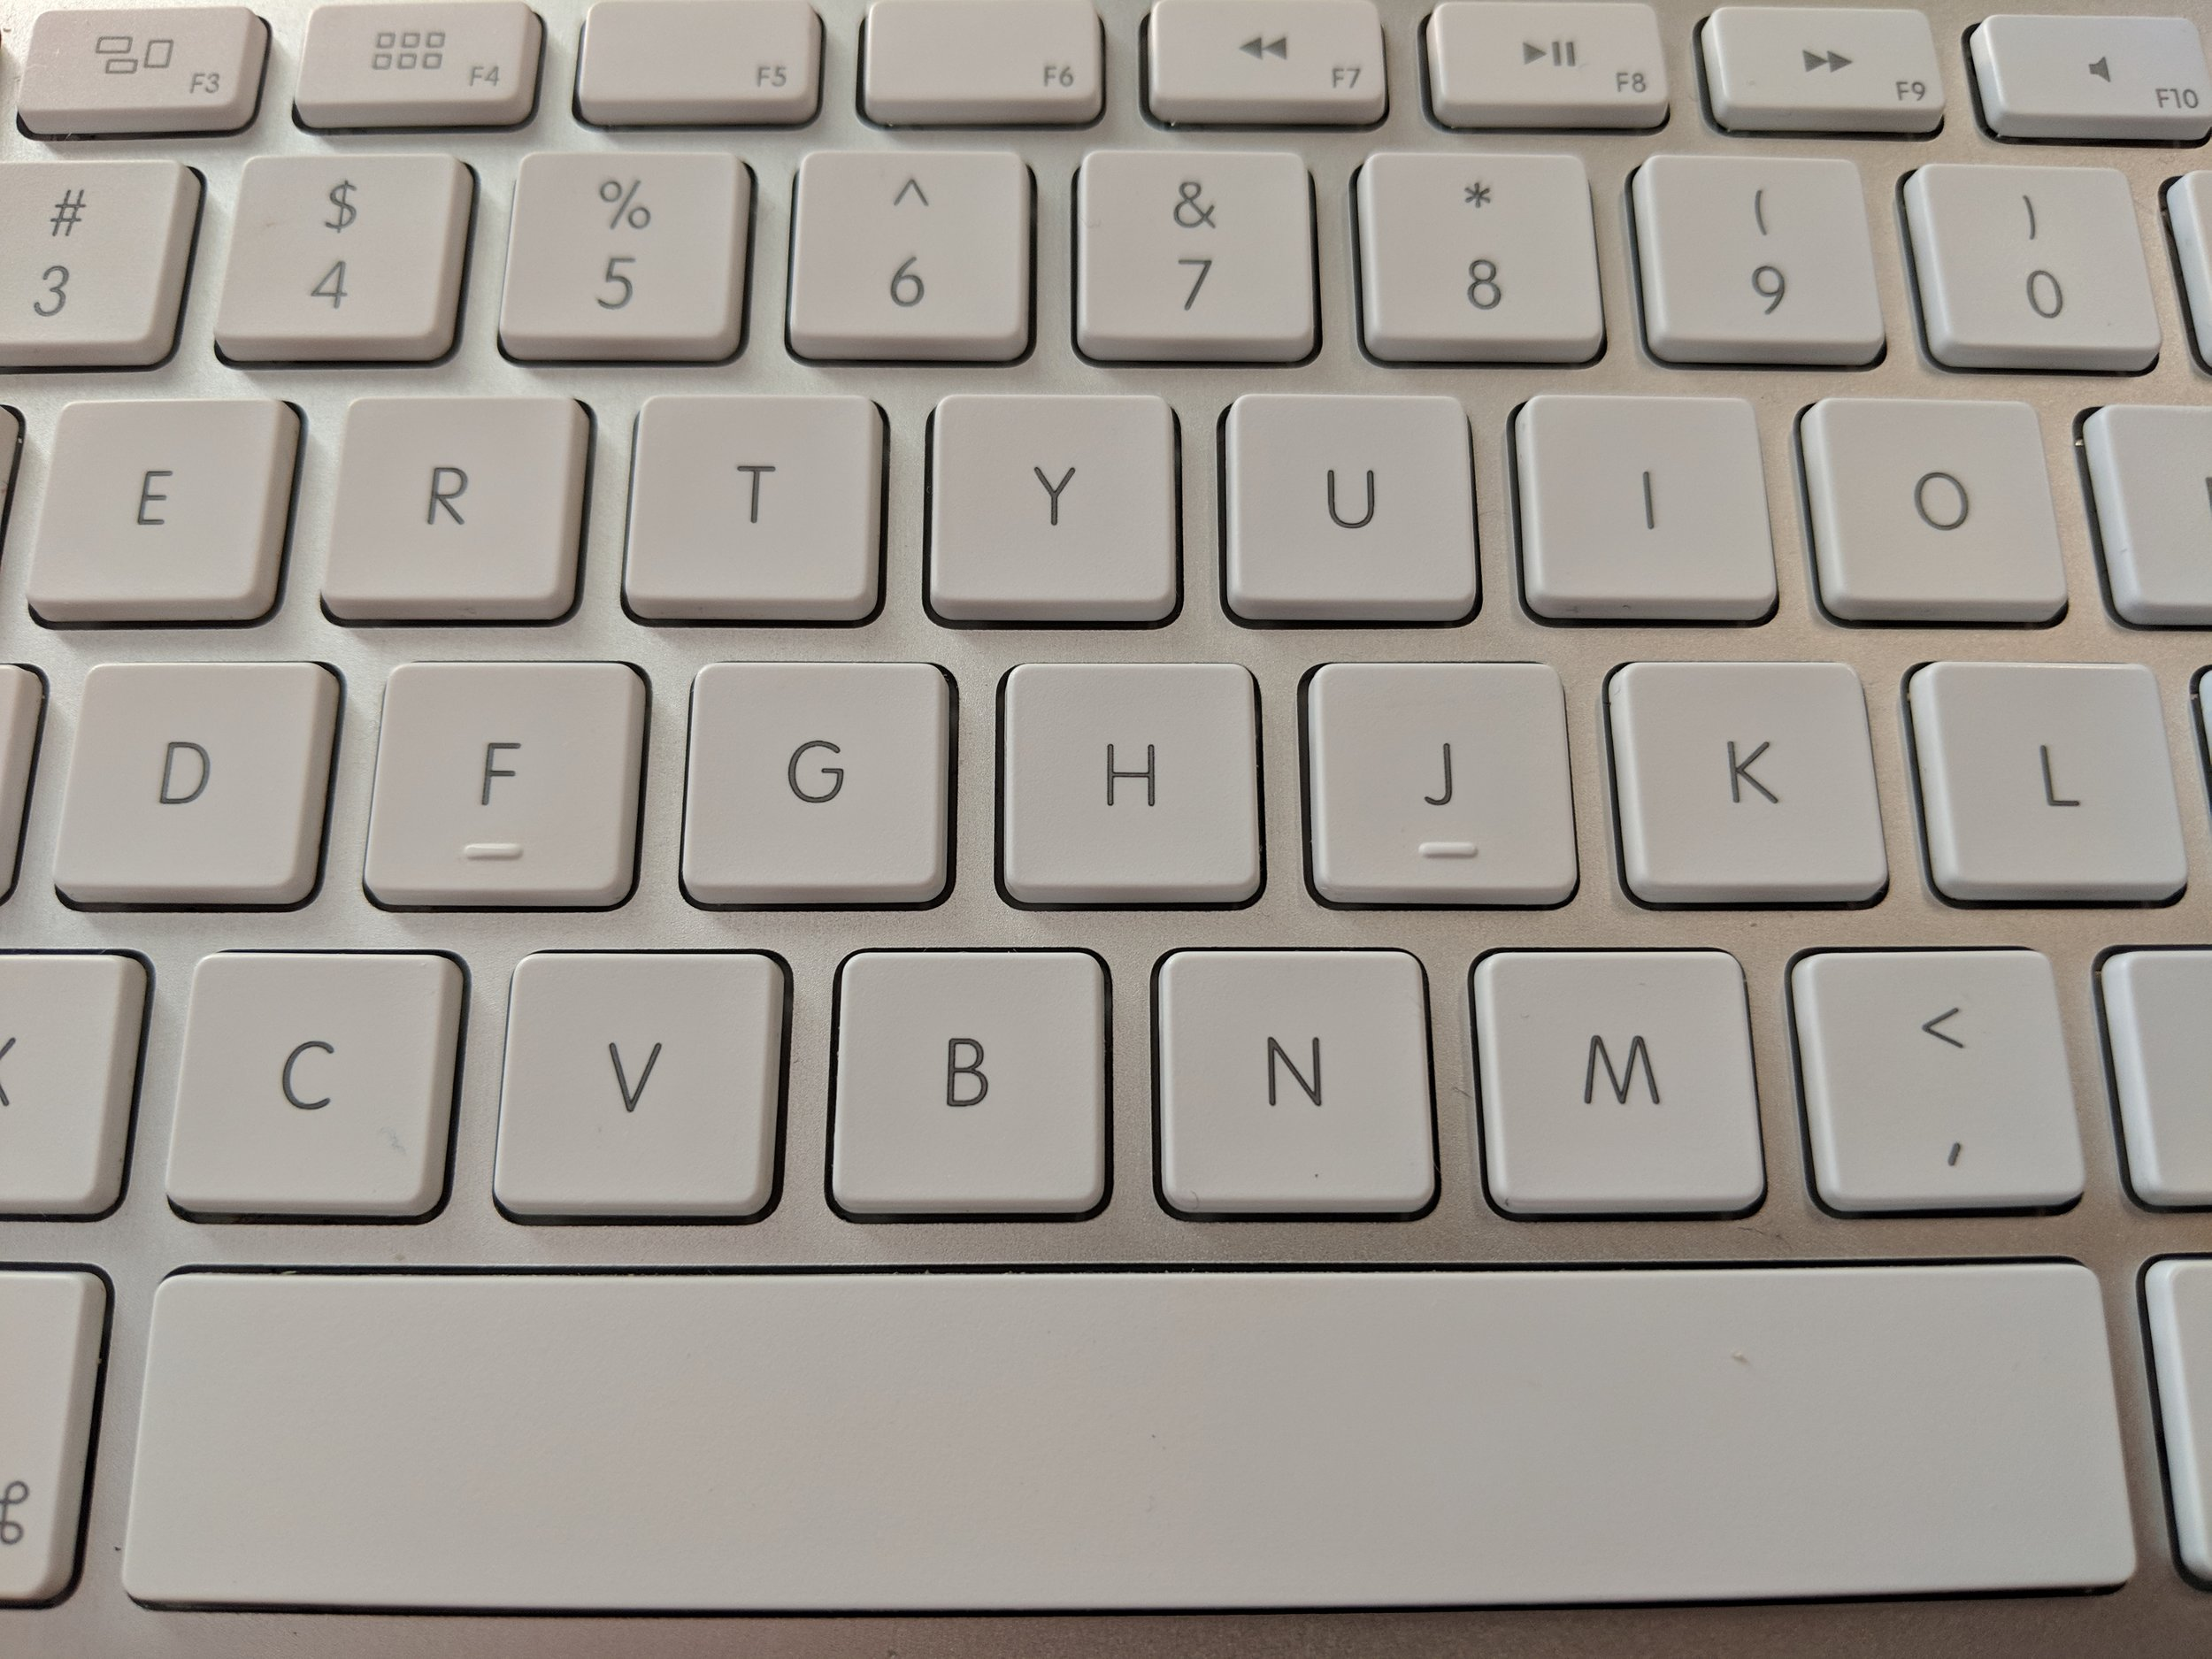 Apple Wired Desktop Keyboard - The longstanding keyboard design largely used across all devices, with significantly more key travel.